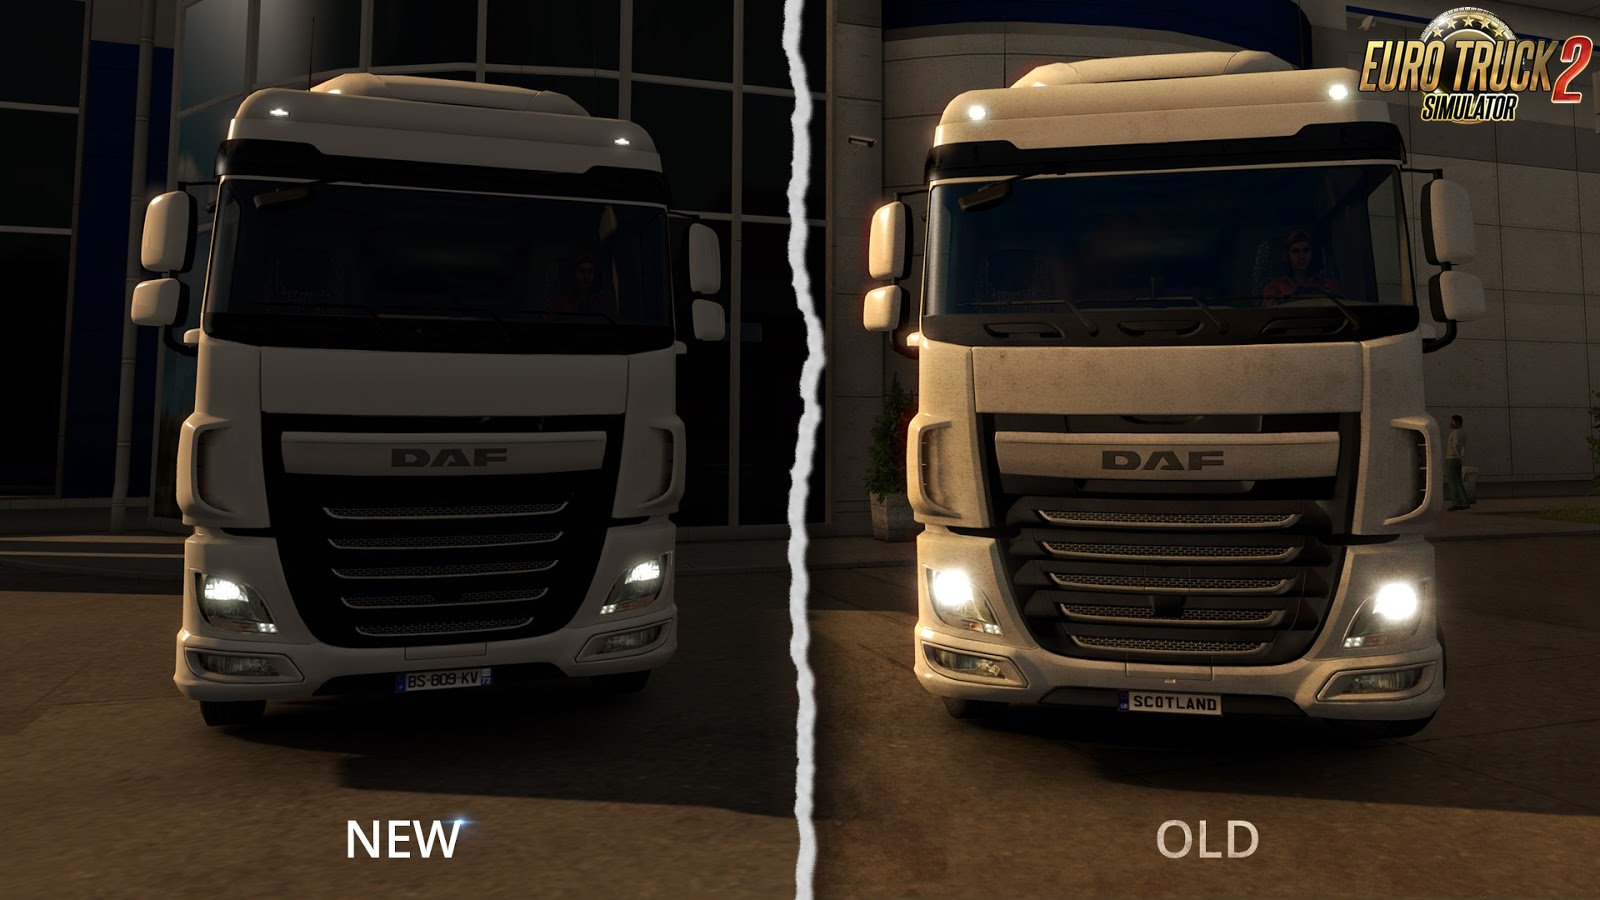 Better light flares for vehicles for Euro Truck Simulator 2